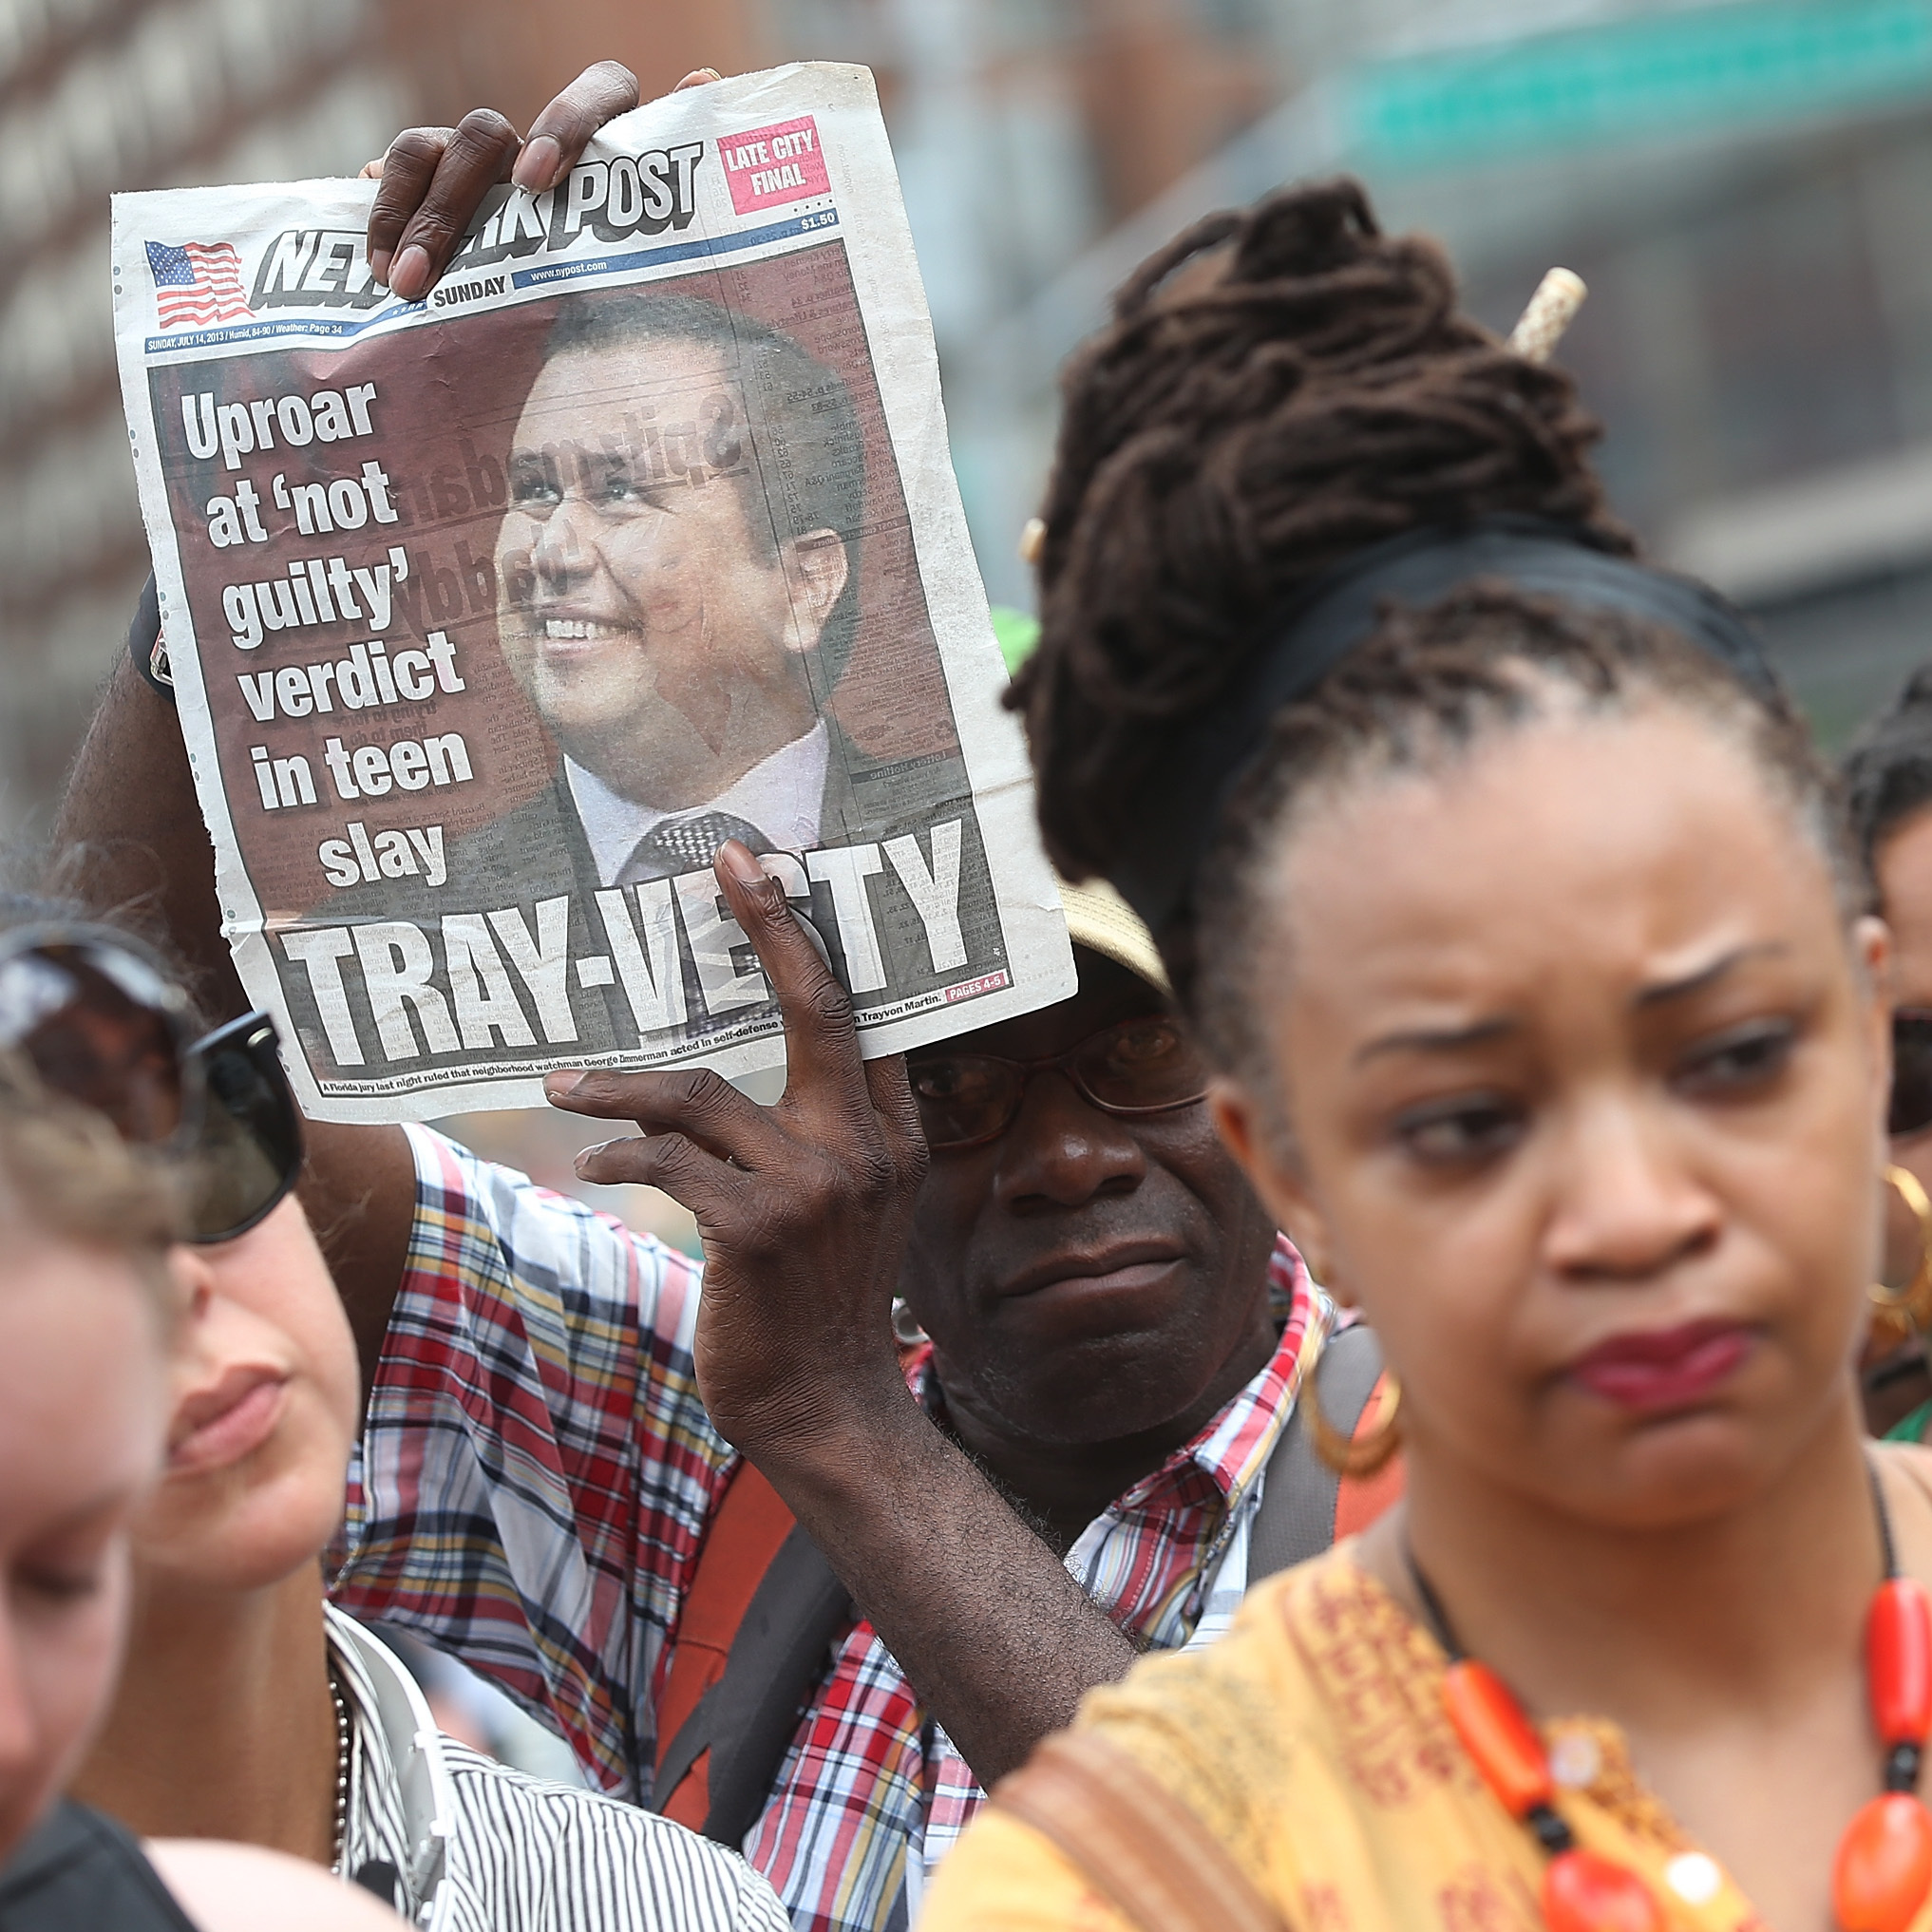 People gather at a rally honoring Trayvon Martin at Union Square in New York City on Sunday. On Saturday, a jury in Sanford, Fla., acquitted George Zimmerman of all charges in the shooting death of Martin. Rallies were held in several U.S. cities on Sunday denouncing the verdict.